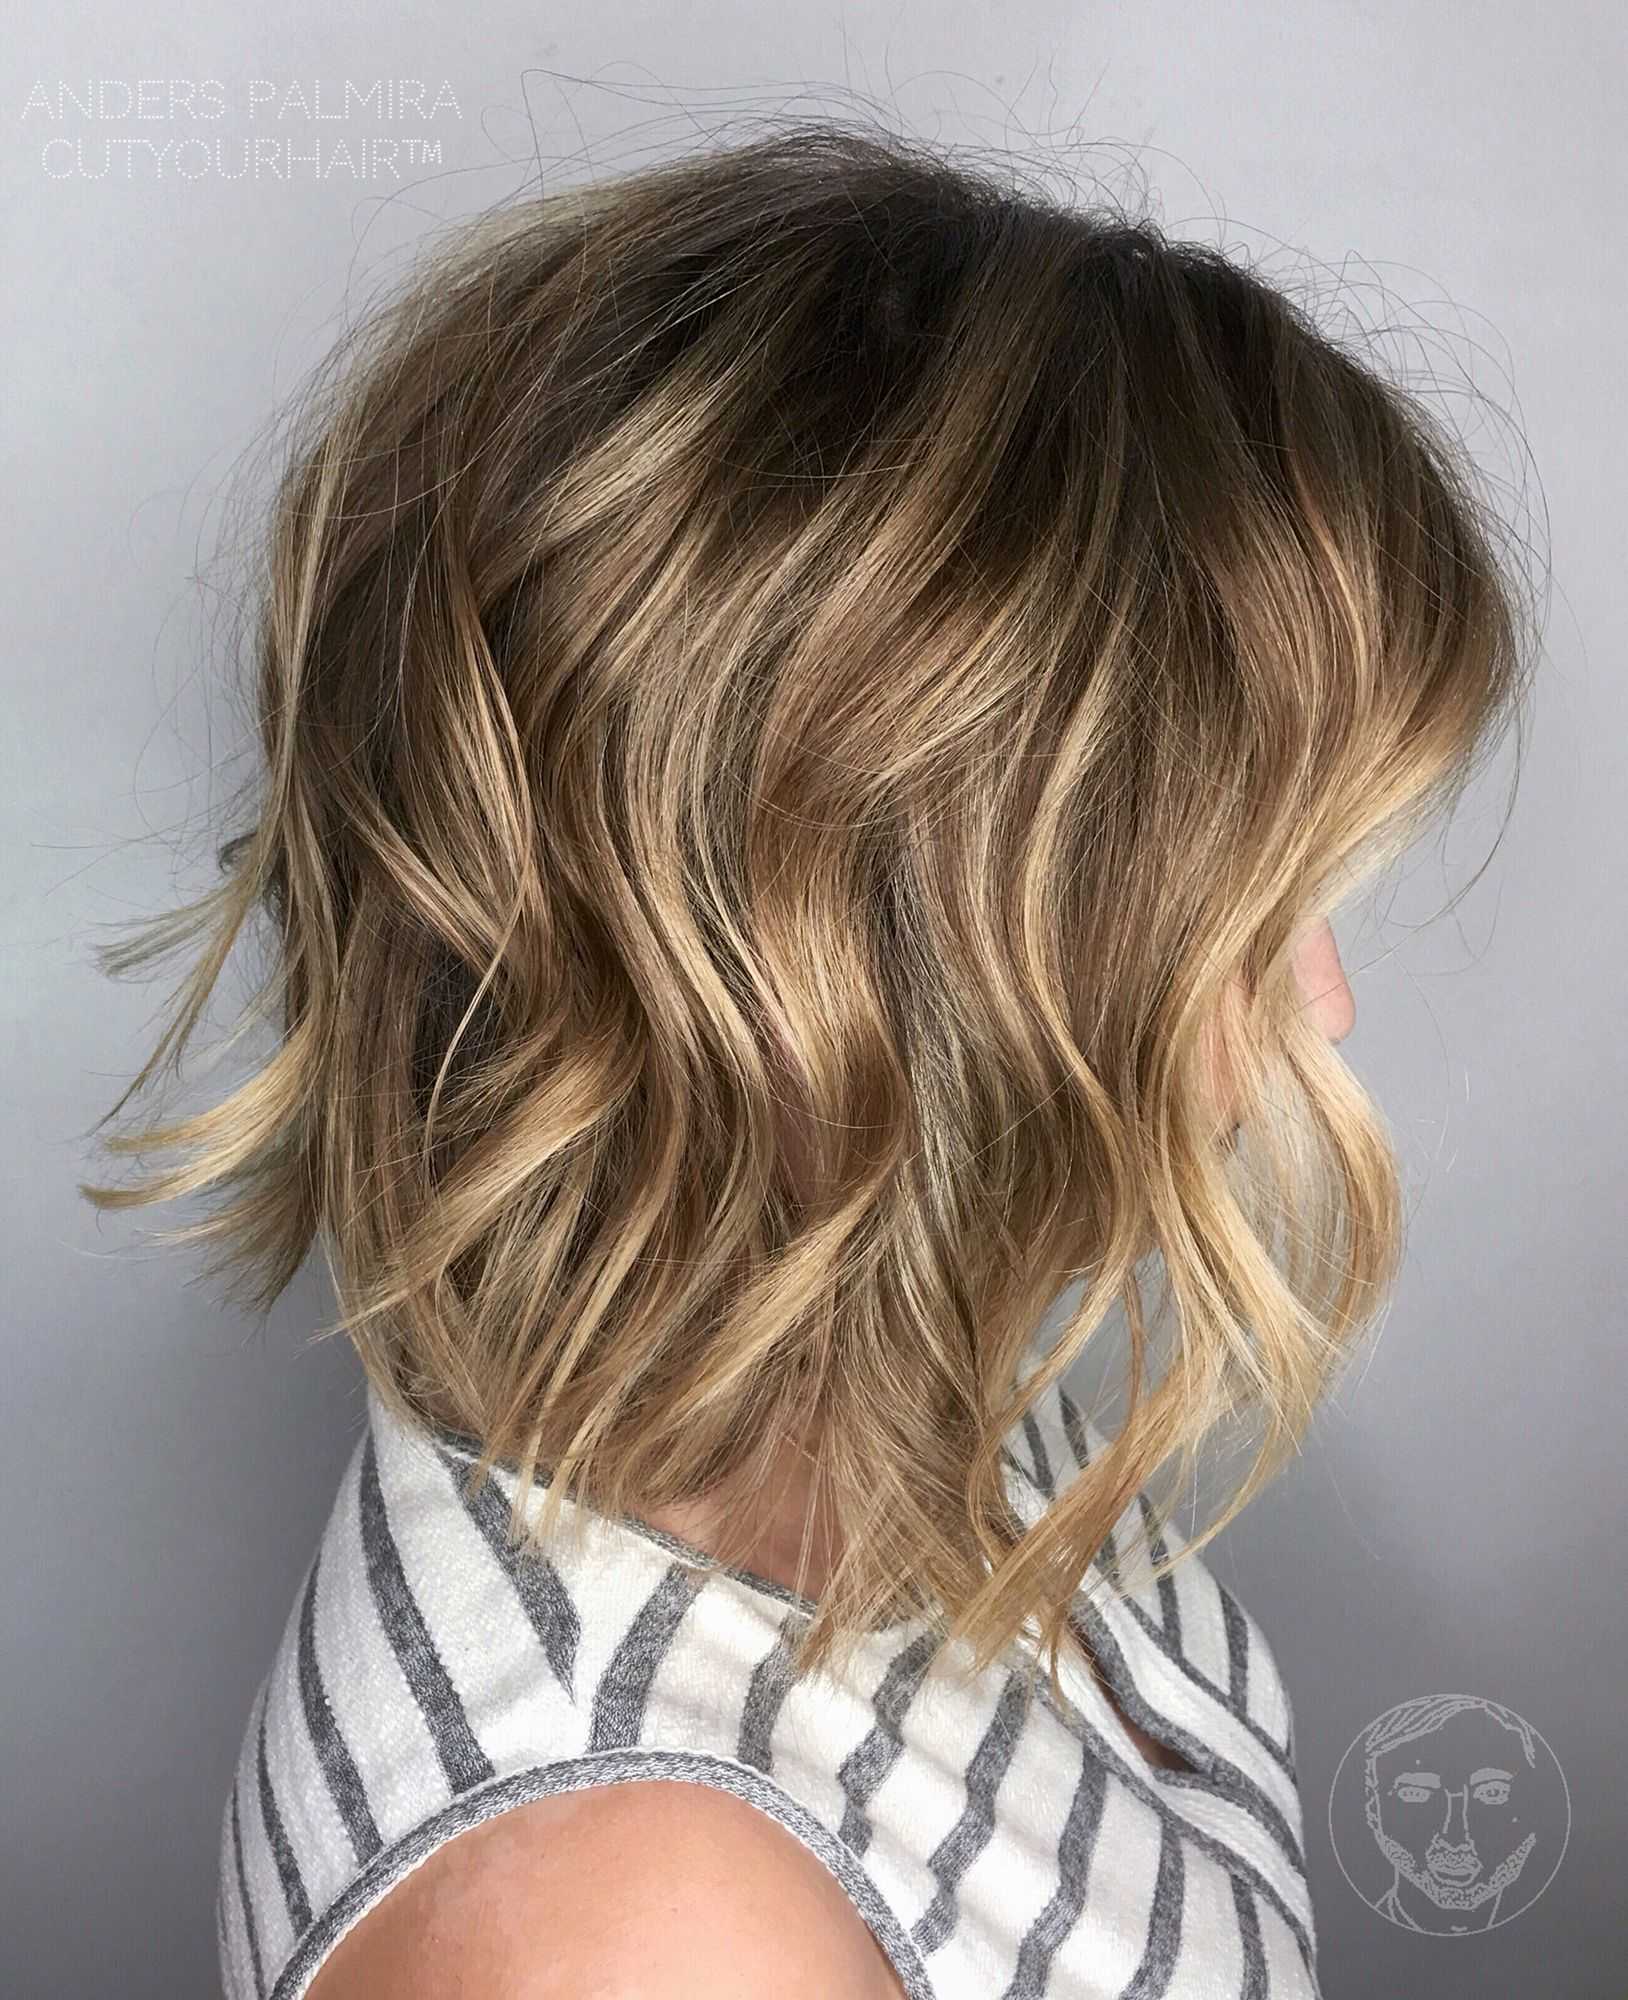 Pin On Cut Your Hair